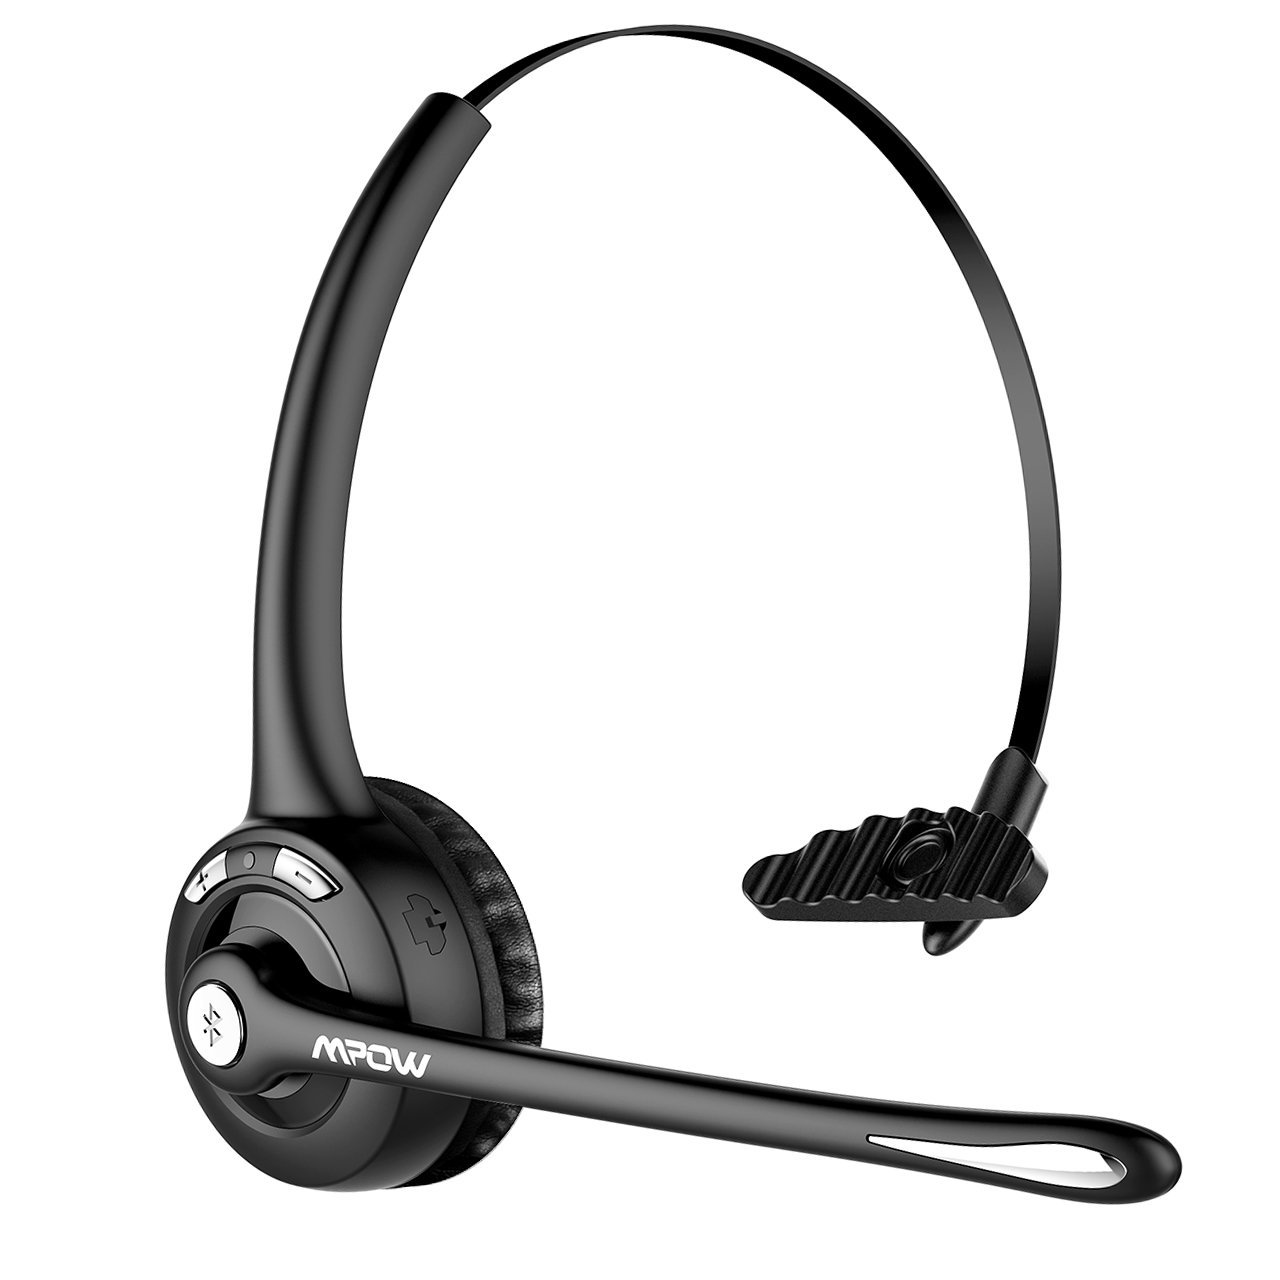 Mpow Pro Trucker Bluetooth Headset- Best Bluetooth Headsets